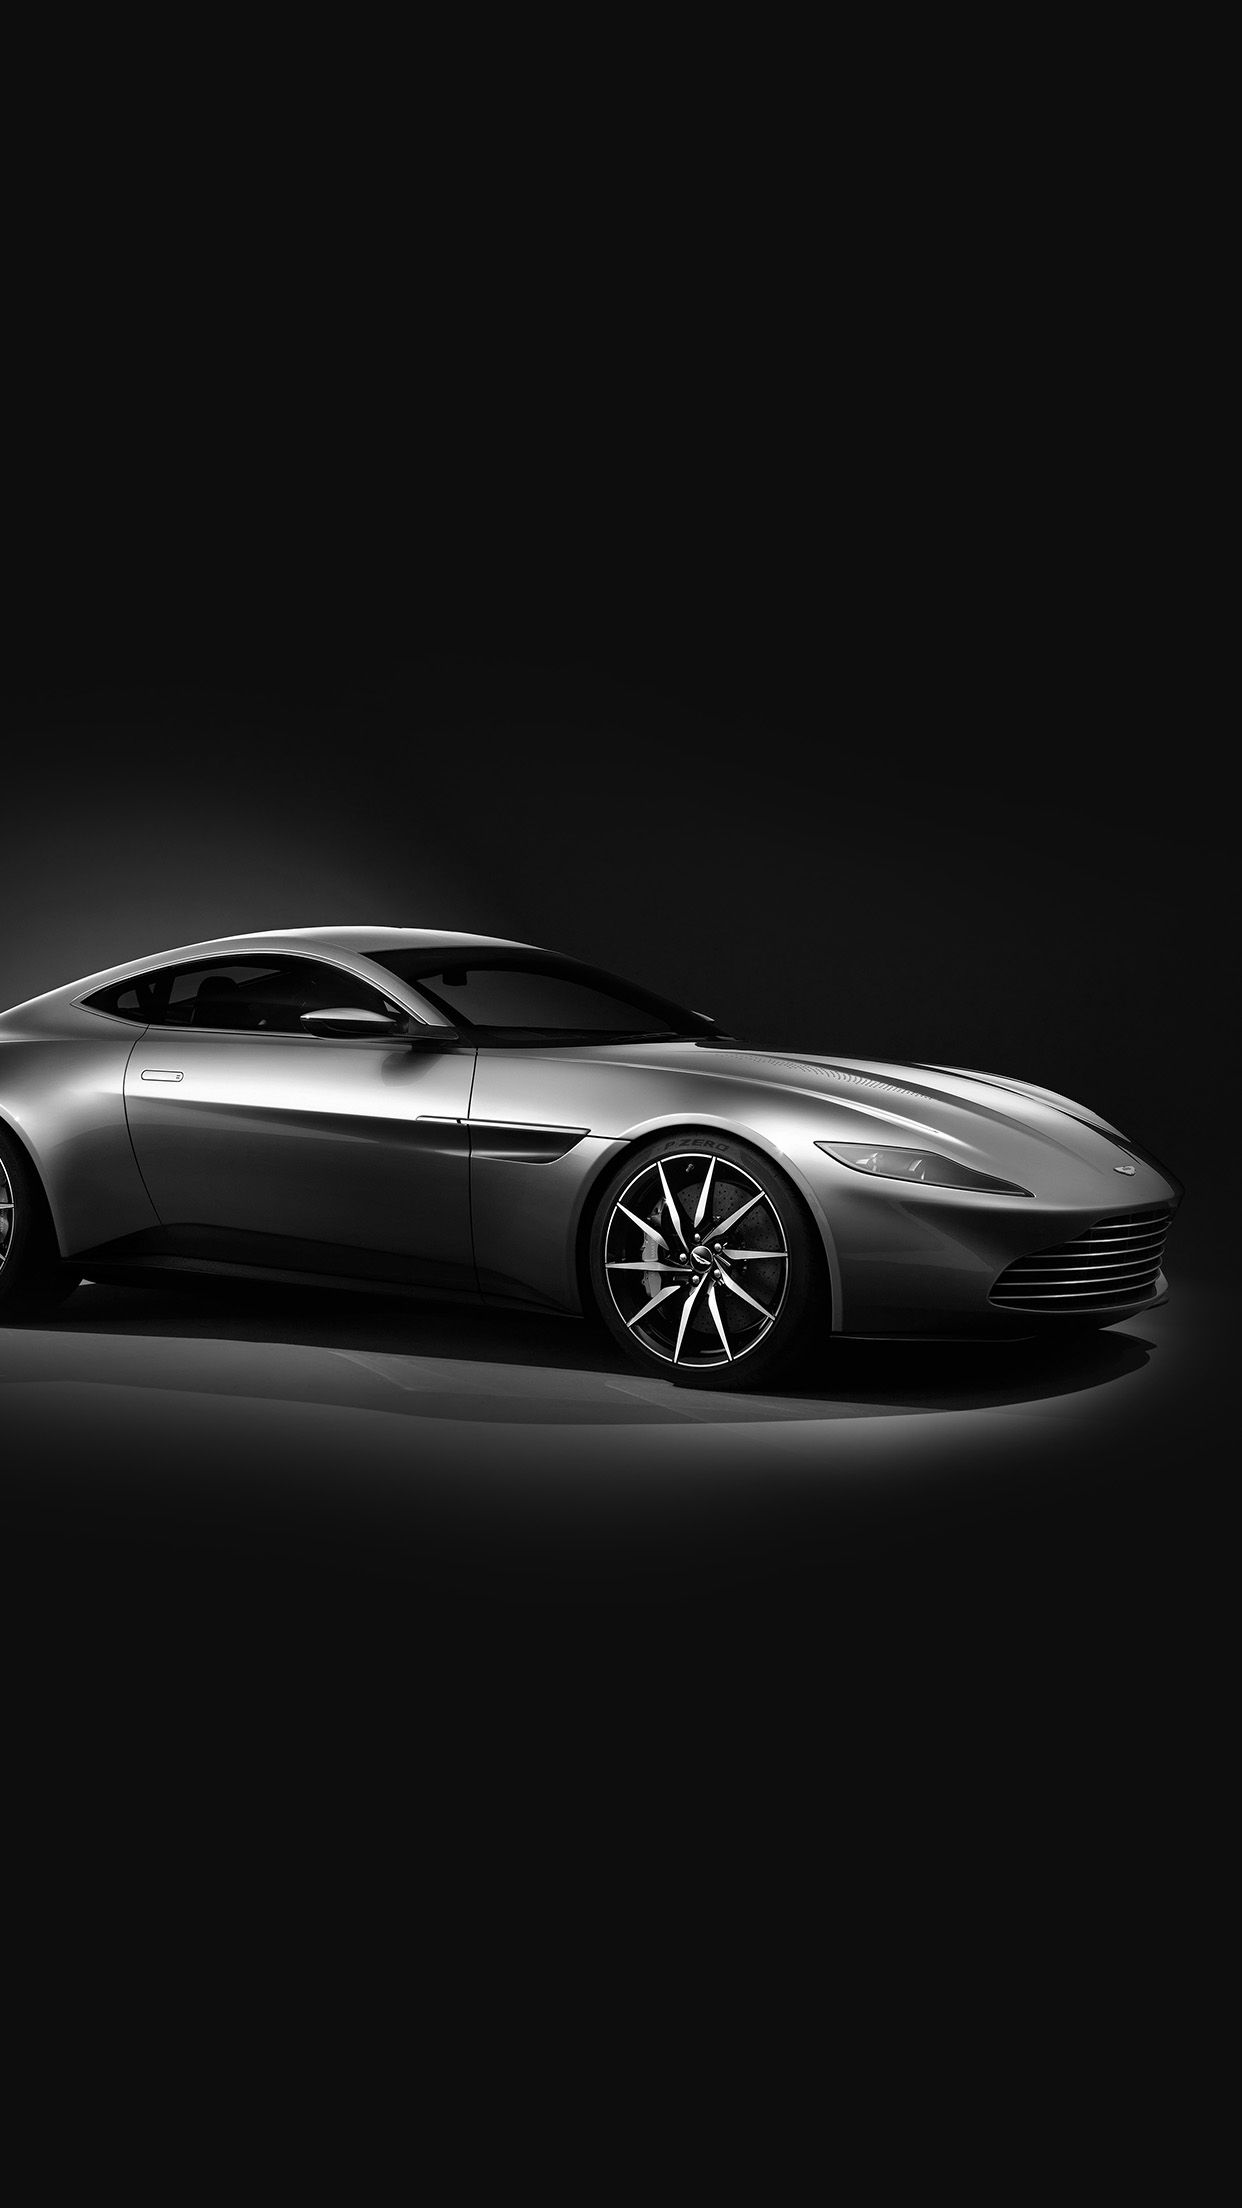 Awesome Aston Martin Db10 Sports Car Exotic Dark Bw Iphone6 Plus